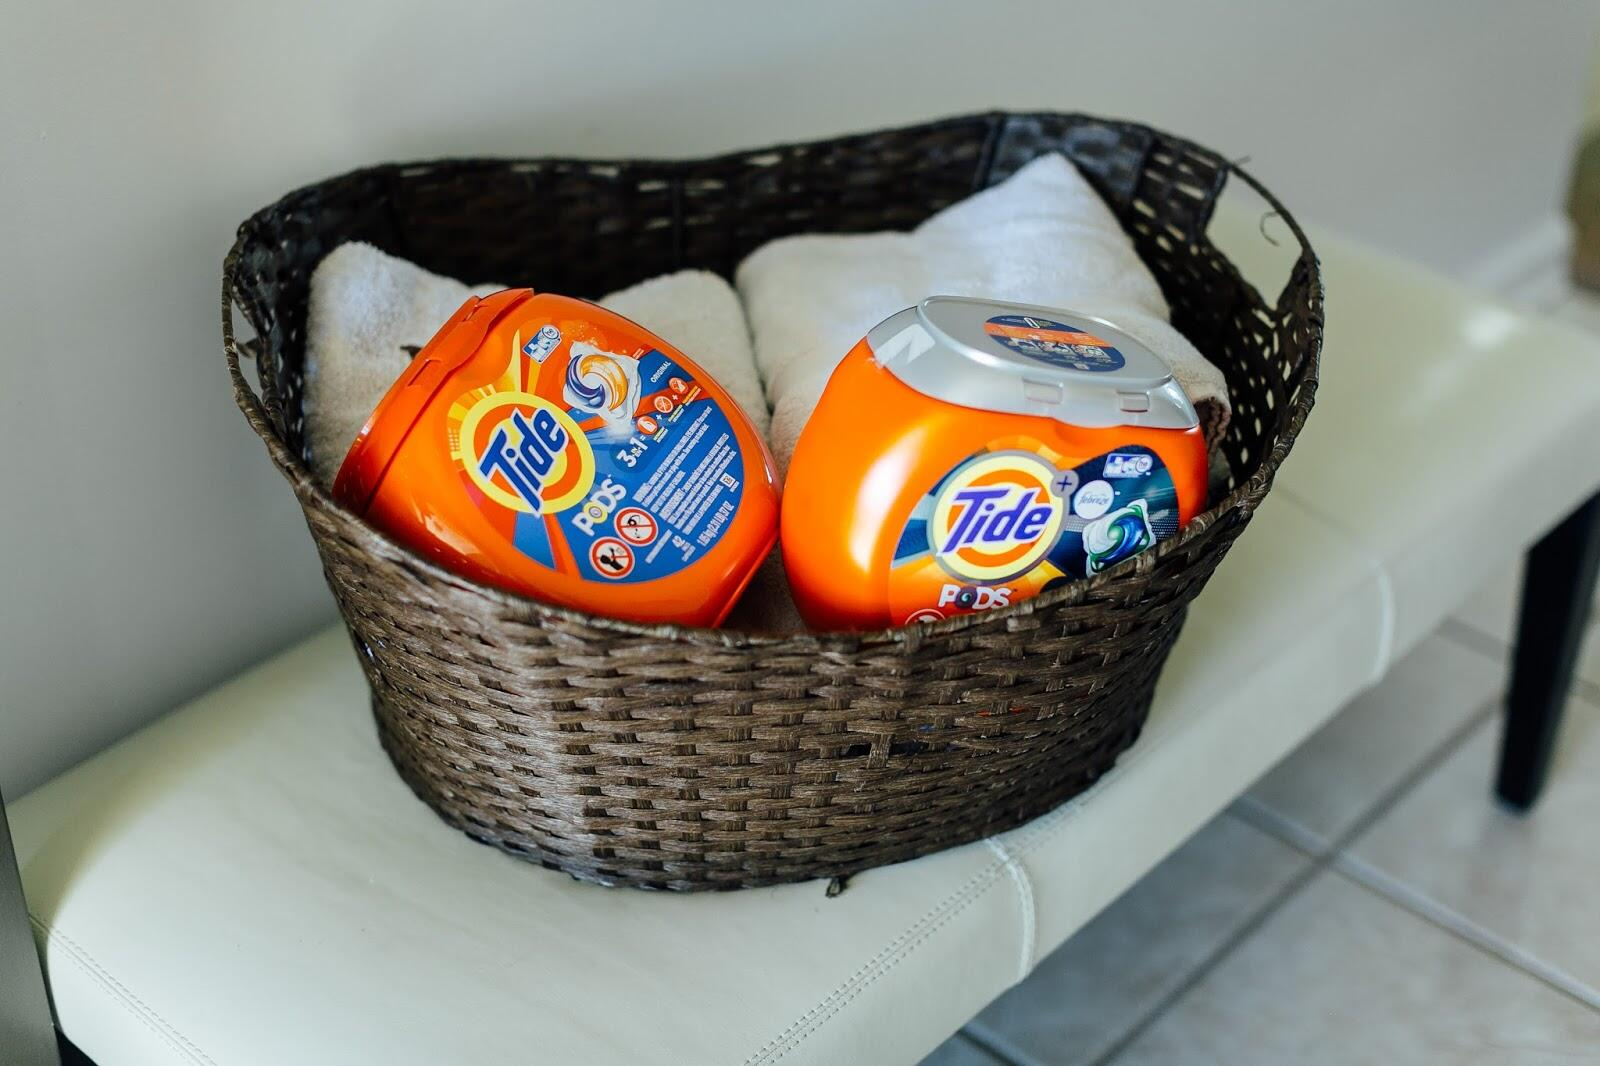 The Best Laundry Detergent to Remove Muddy Paws by lifestyle blogger Laura of Walking in Memphis in High Heels